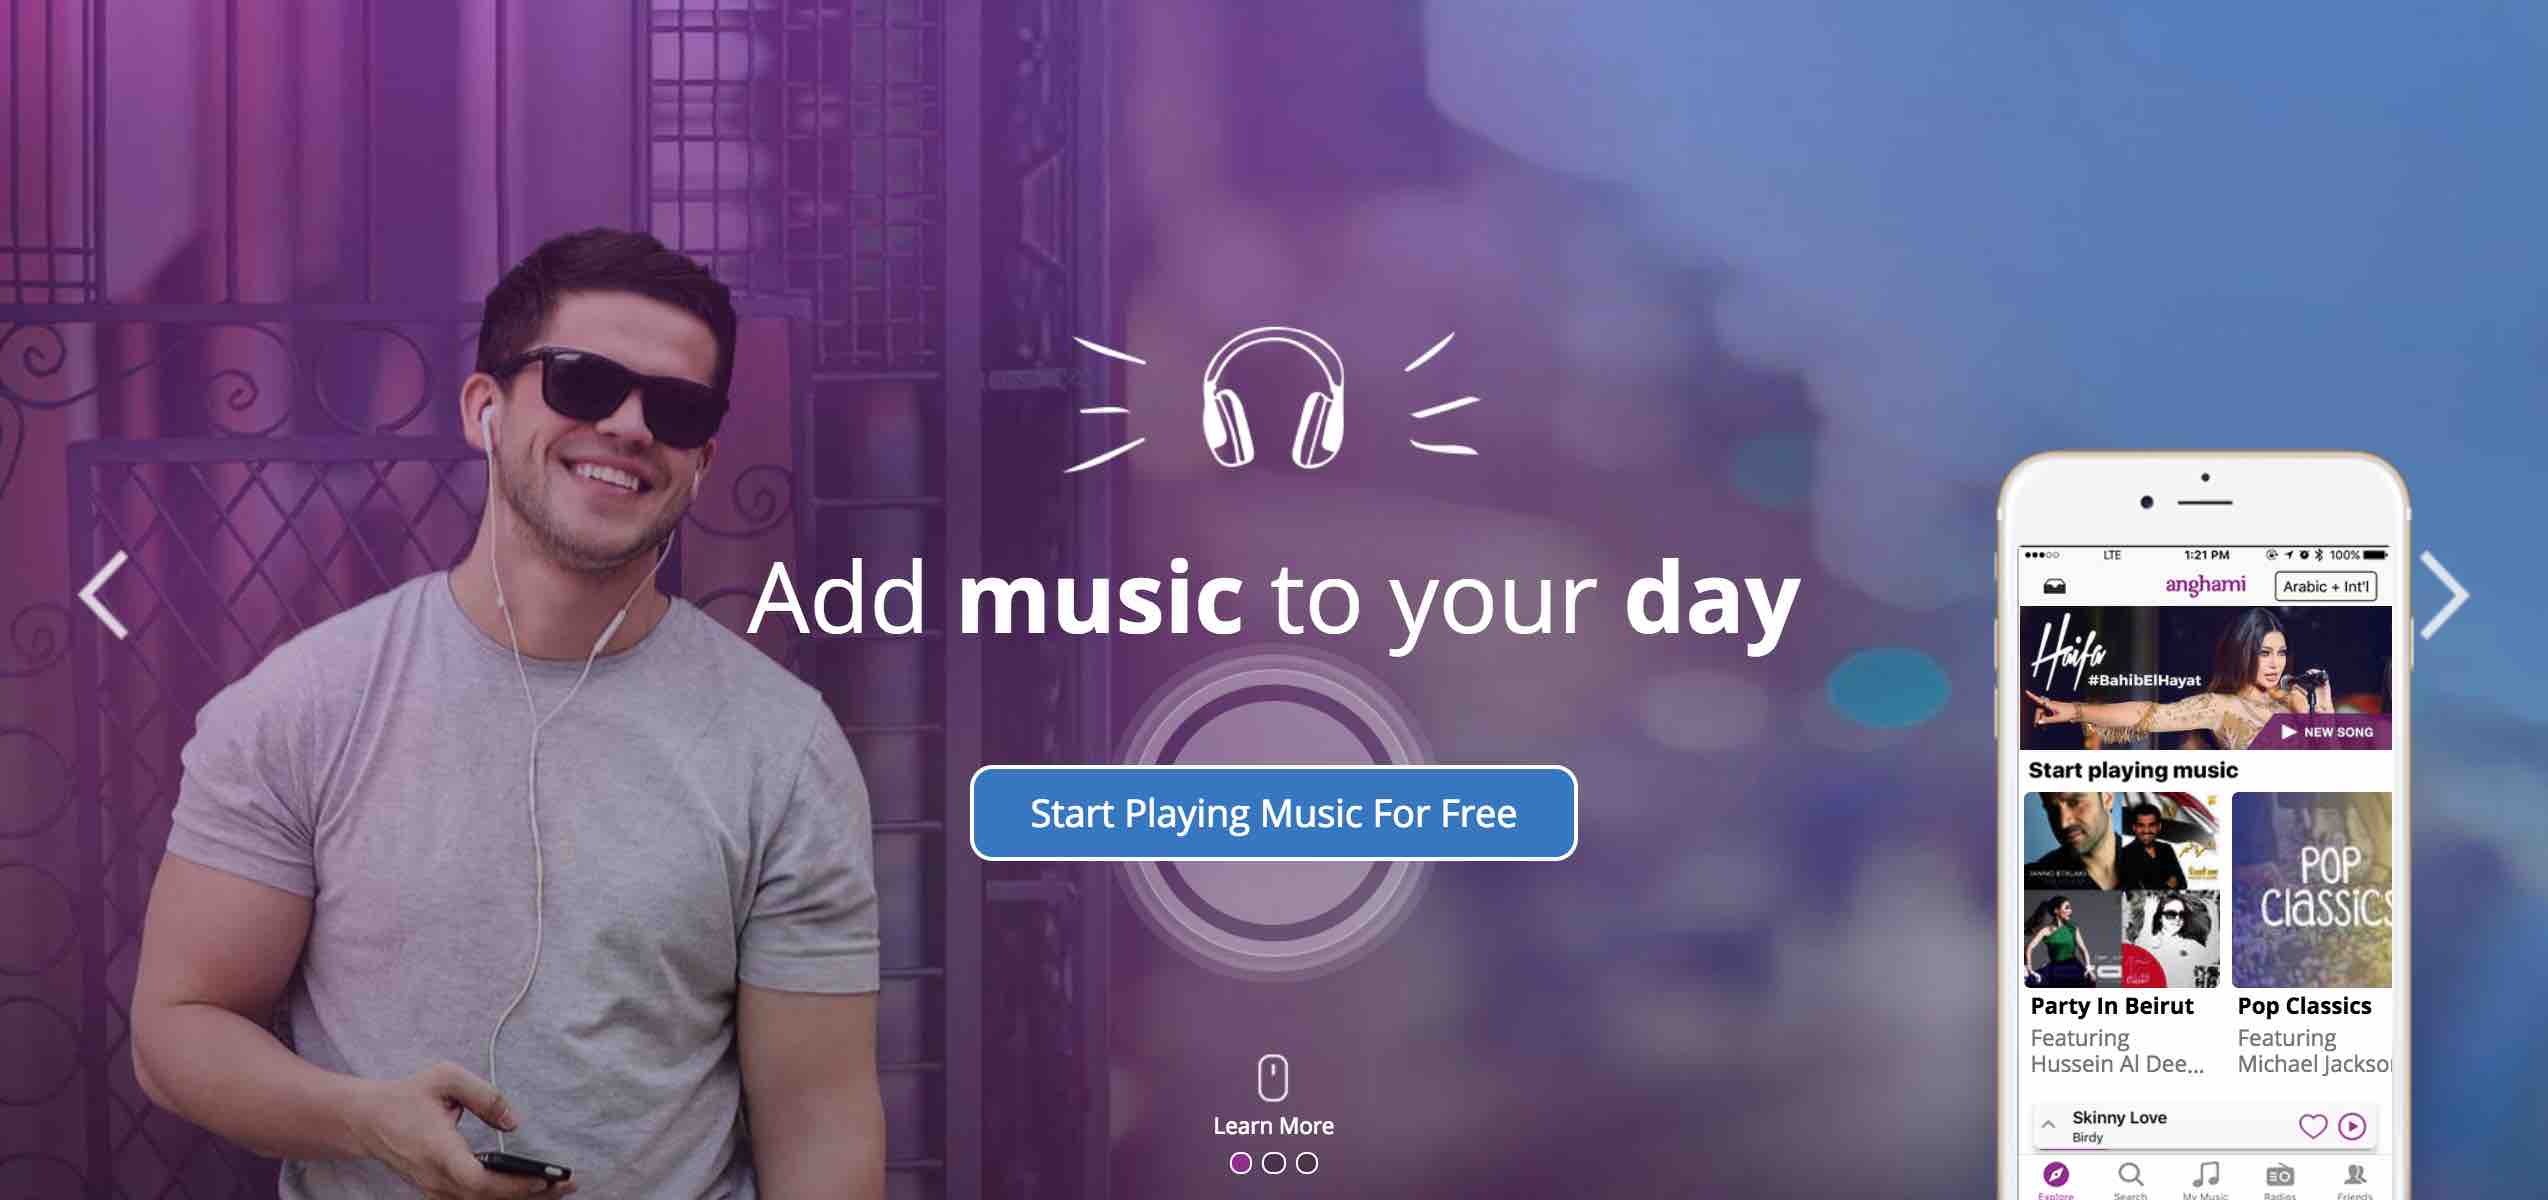 MENA : Marketers Expect to Increase Investment in Digital Audio Ads by up to 15%